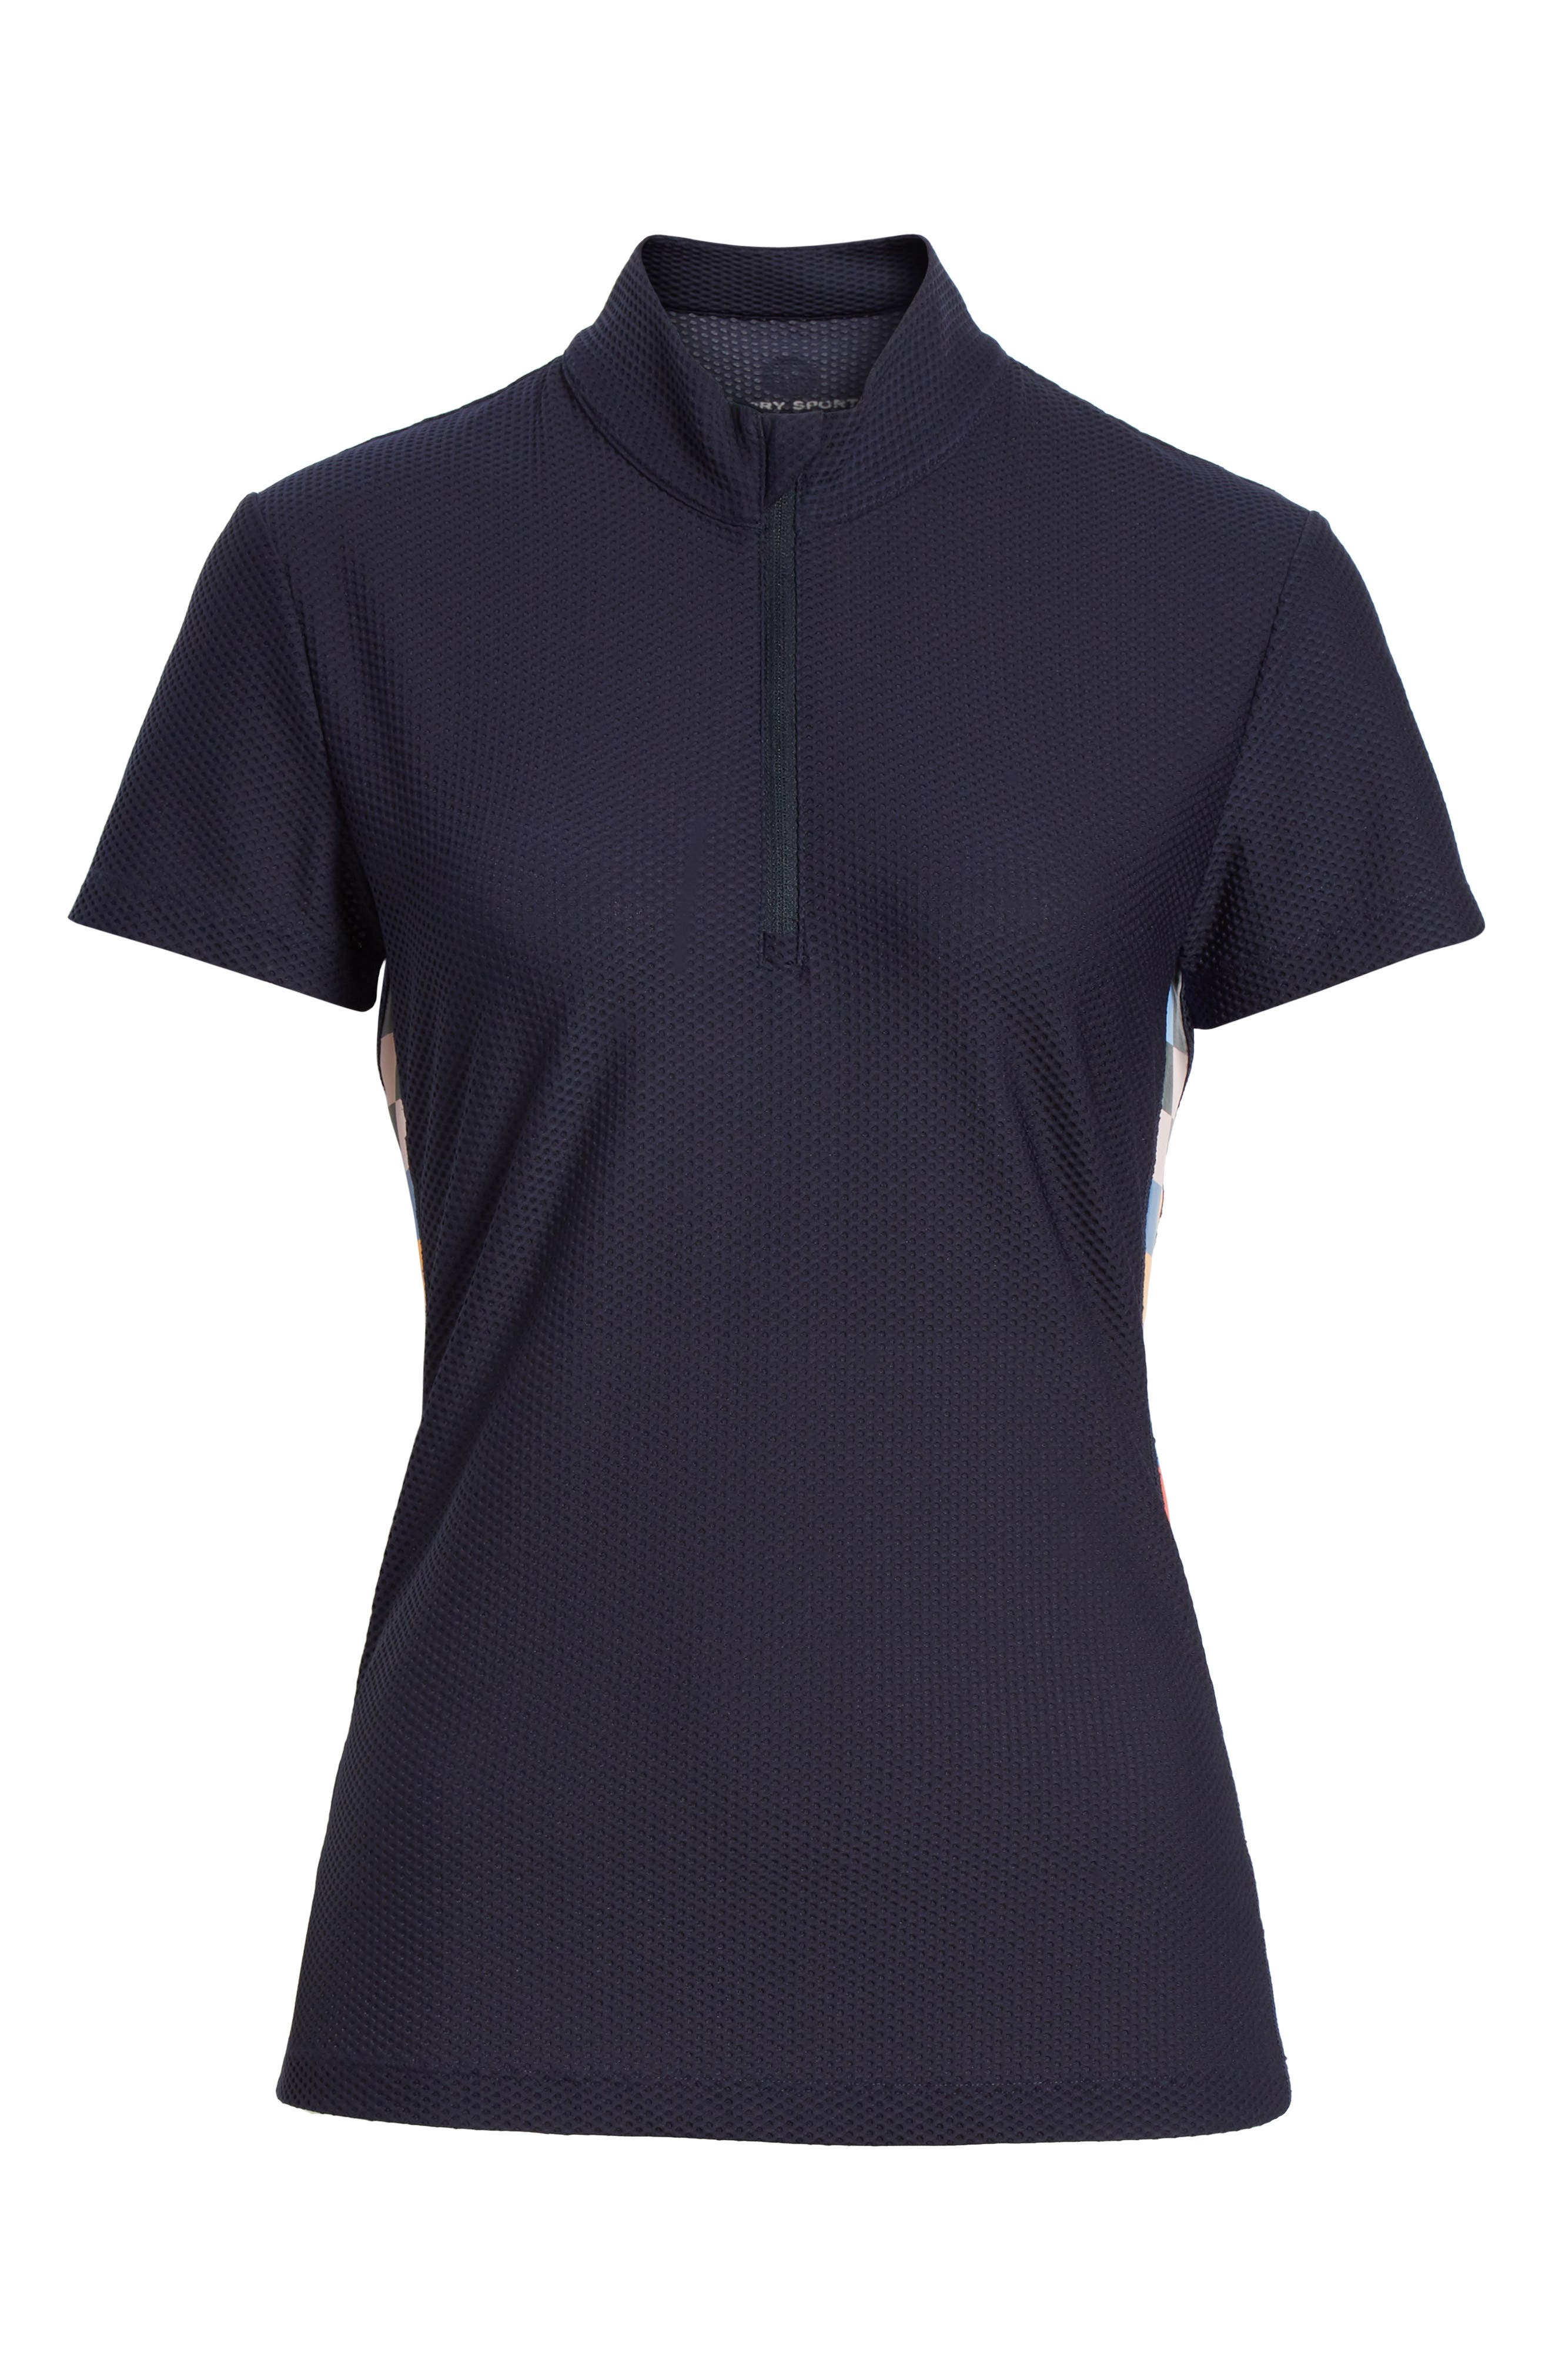 Checker Quarter Zip Mesh Top,                             Alternate thumbnail 6, color,                             TORY NAVY